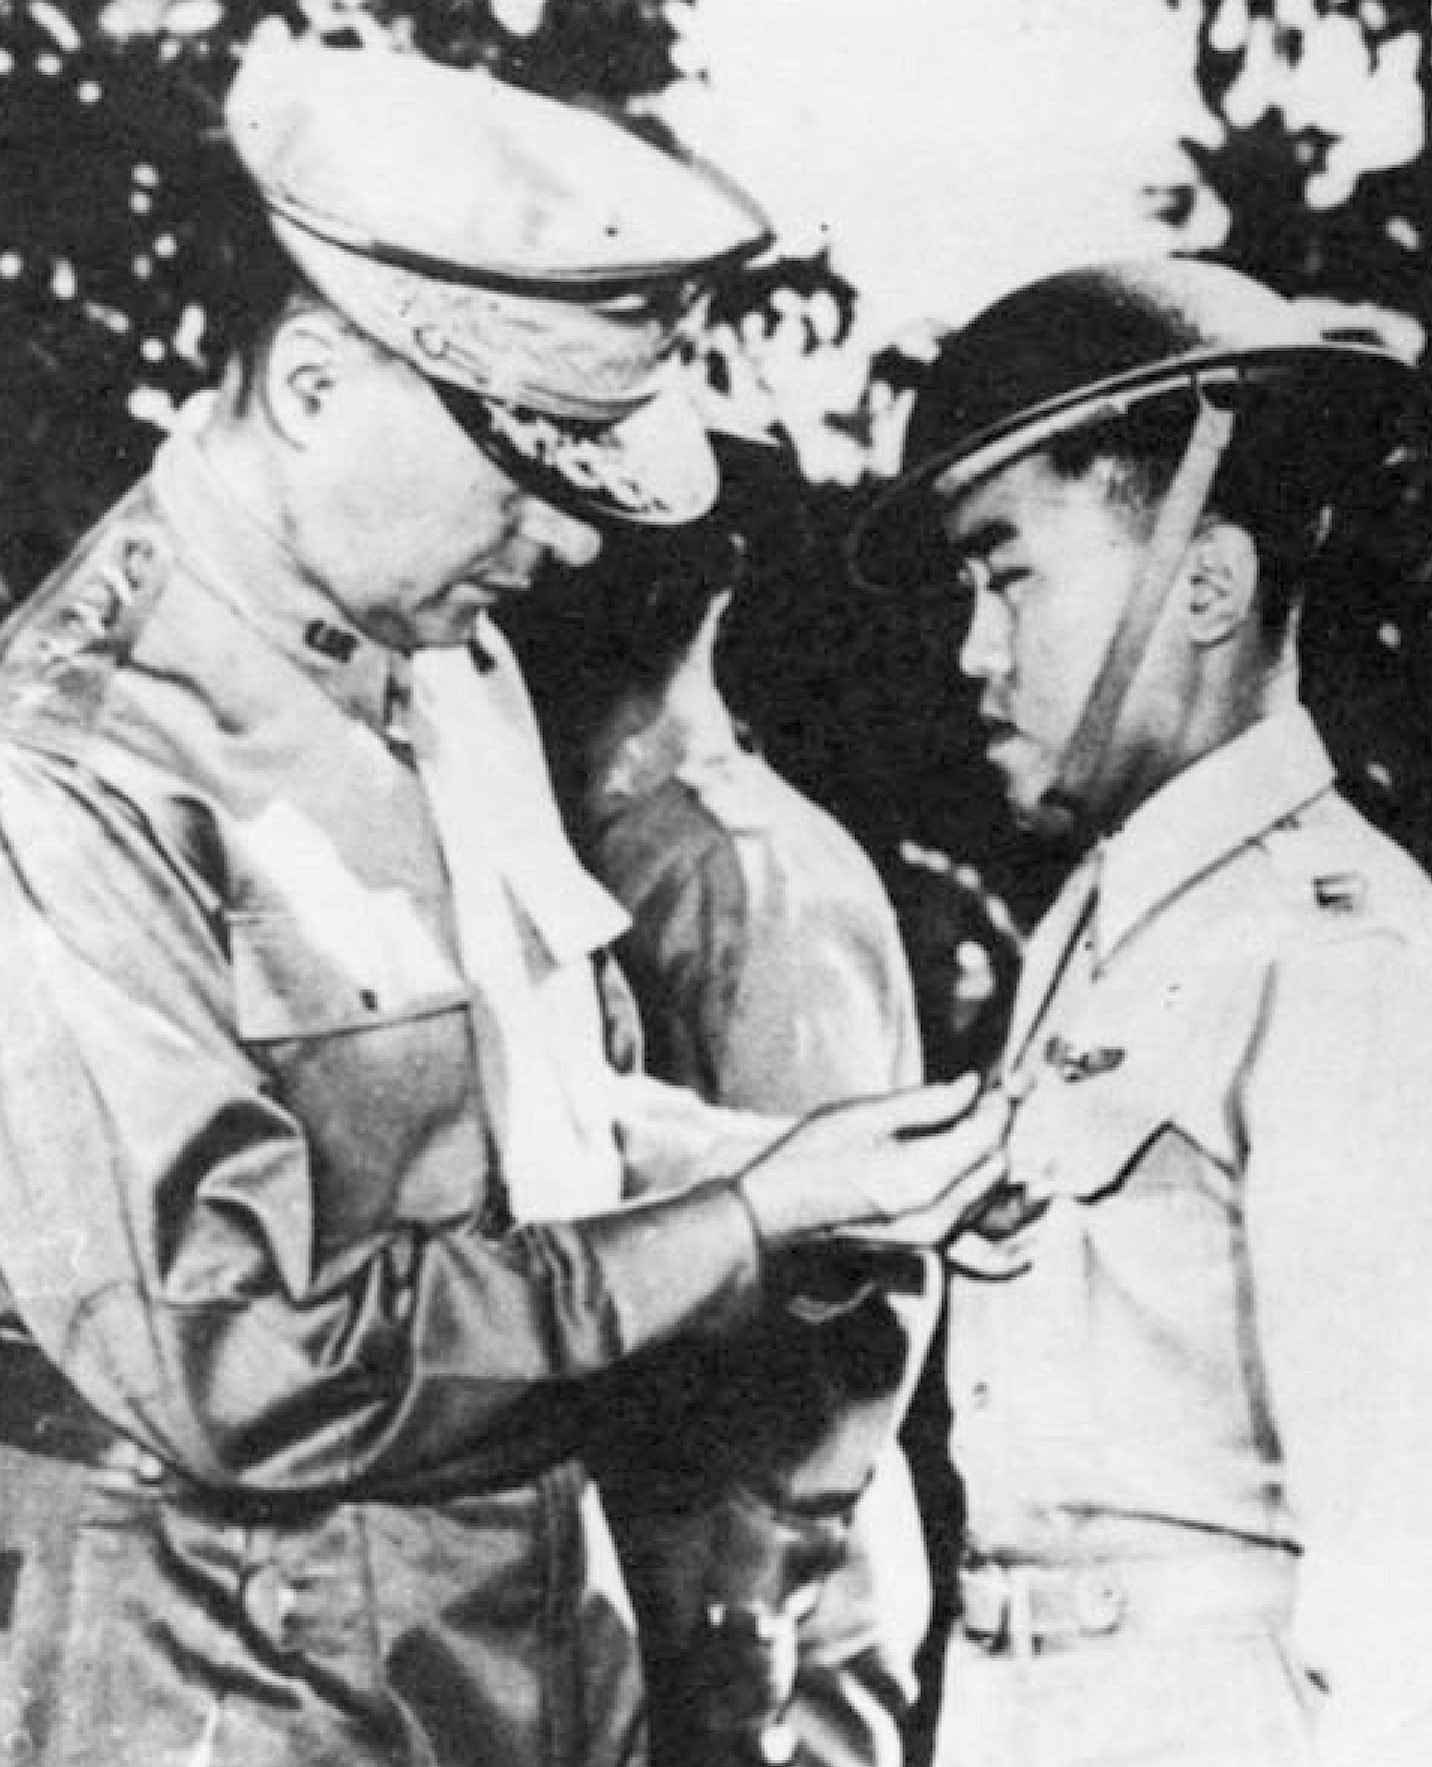 Gen. MacArthur awards the U.S. Distinguished Service Cross to Villamor for his heroic action in an aerial combat against superior Japanese zeros. This is one of 13 medals for valor Villamor earned in WWII.